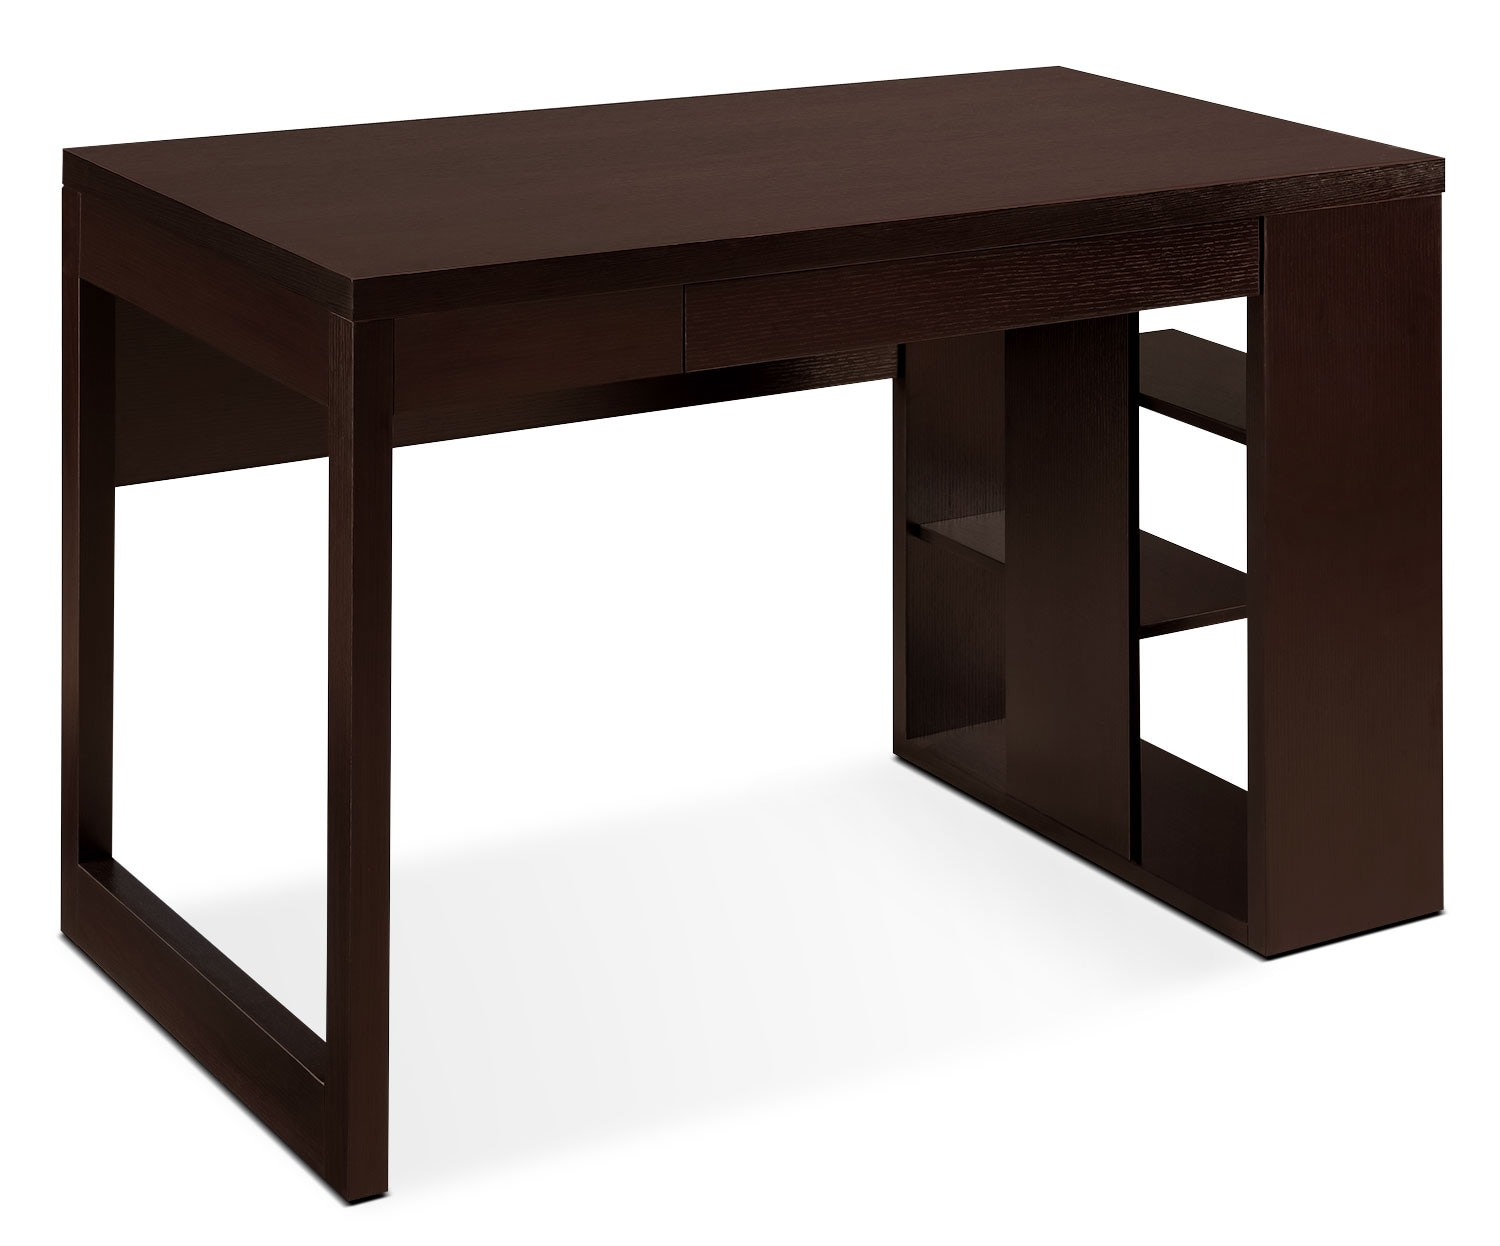 Peyton Desk with Shelves